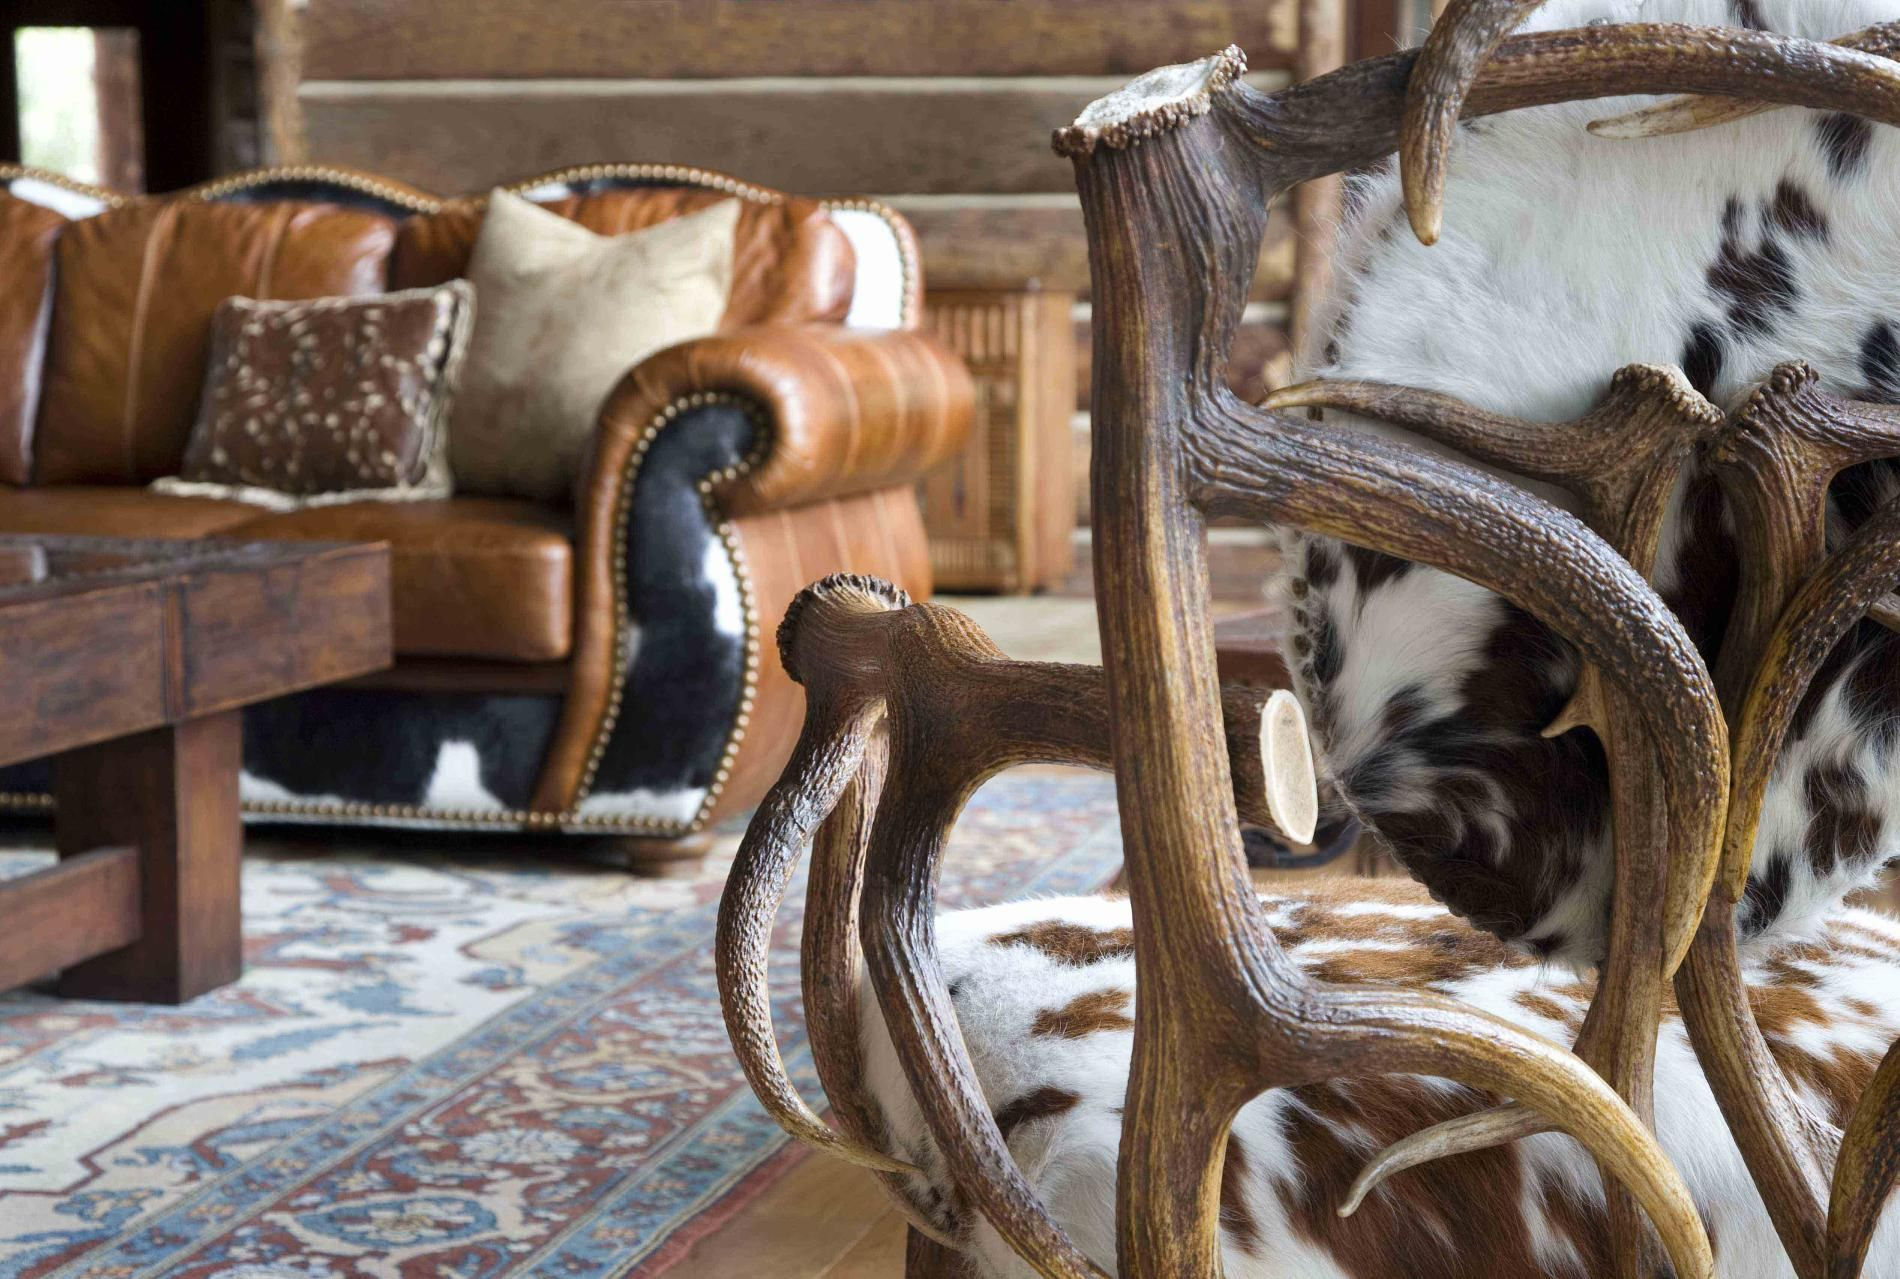 Although I'm not THAT rustic, I love the lines of this #chair in the foreground. Wow... beautiful. I also adore the nailhead trim and the cowhide on the leather #sofa in the background. I just can't get over the fact that these were...animals...at one point. Admiring the beauty...well, after the fact.